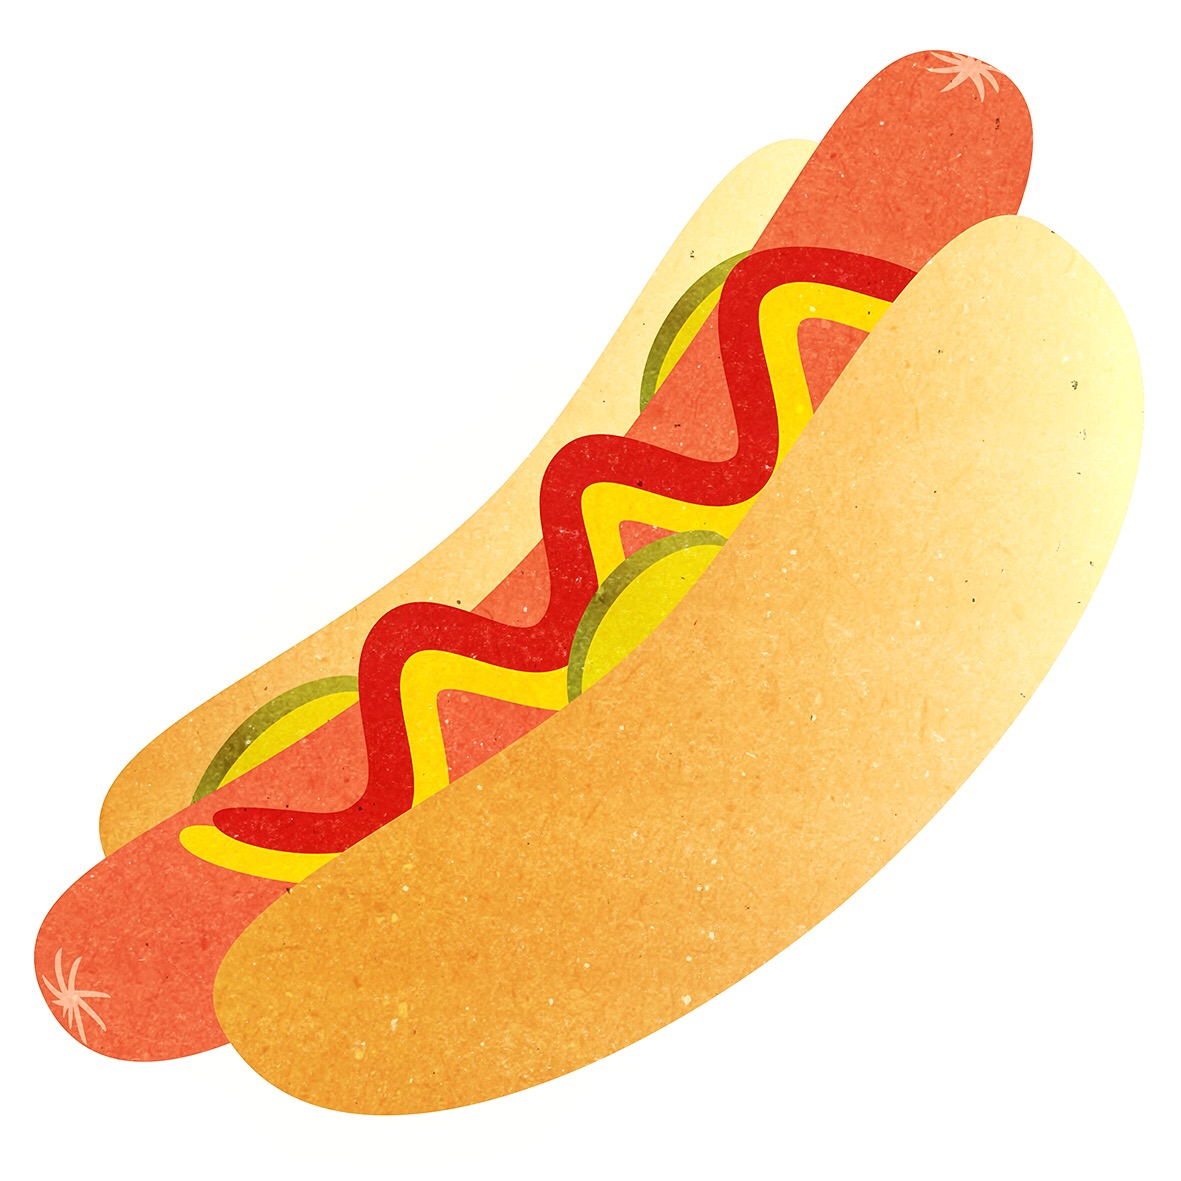 HOT DOG ILLUSTRATION